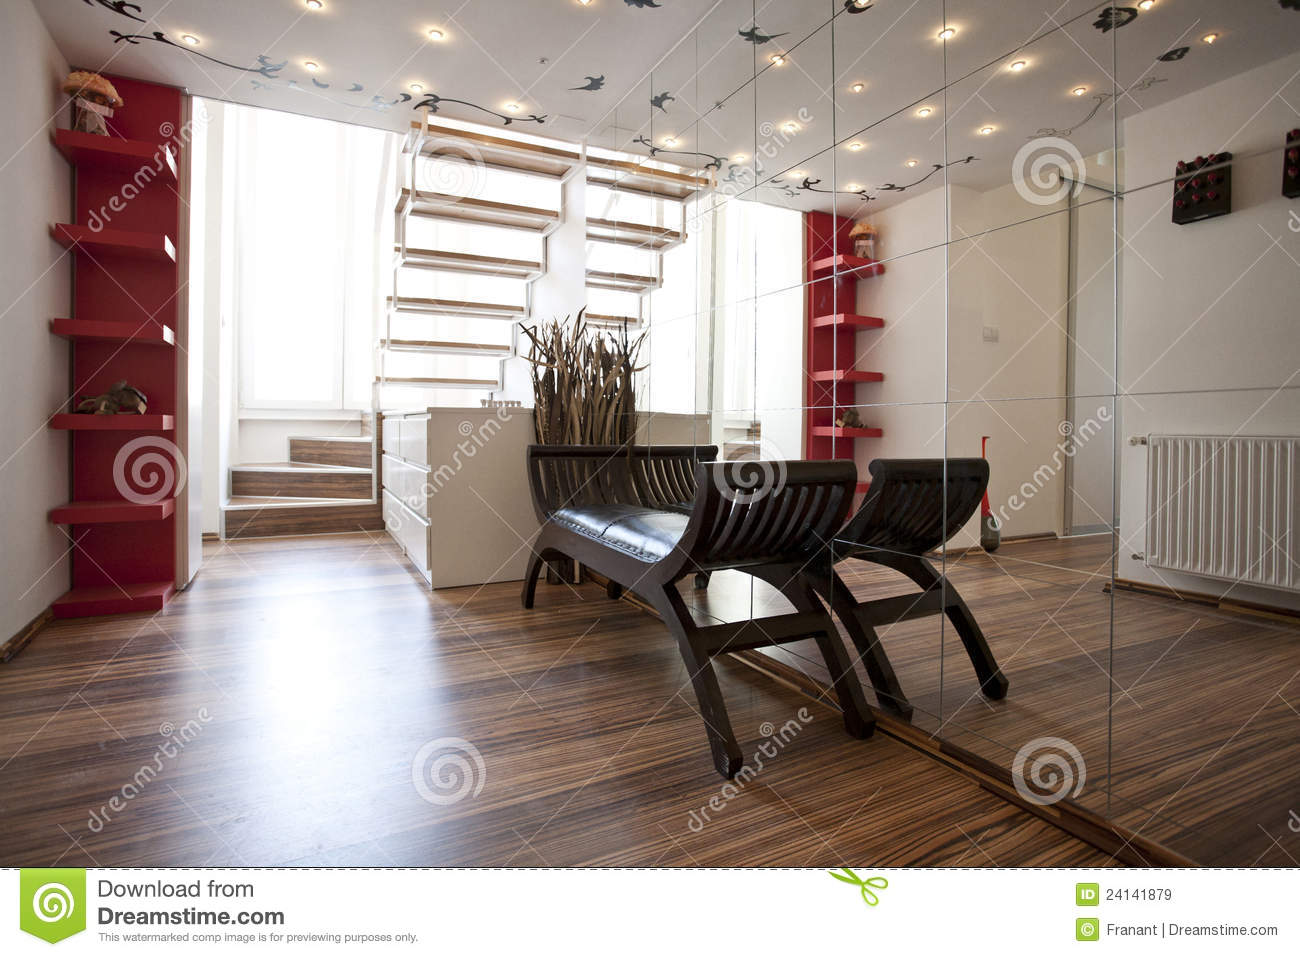 Home lobby interior design royalty free stock images for In home designer